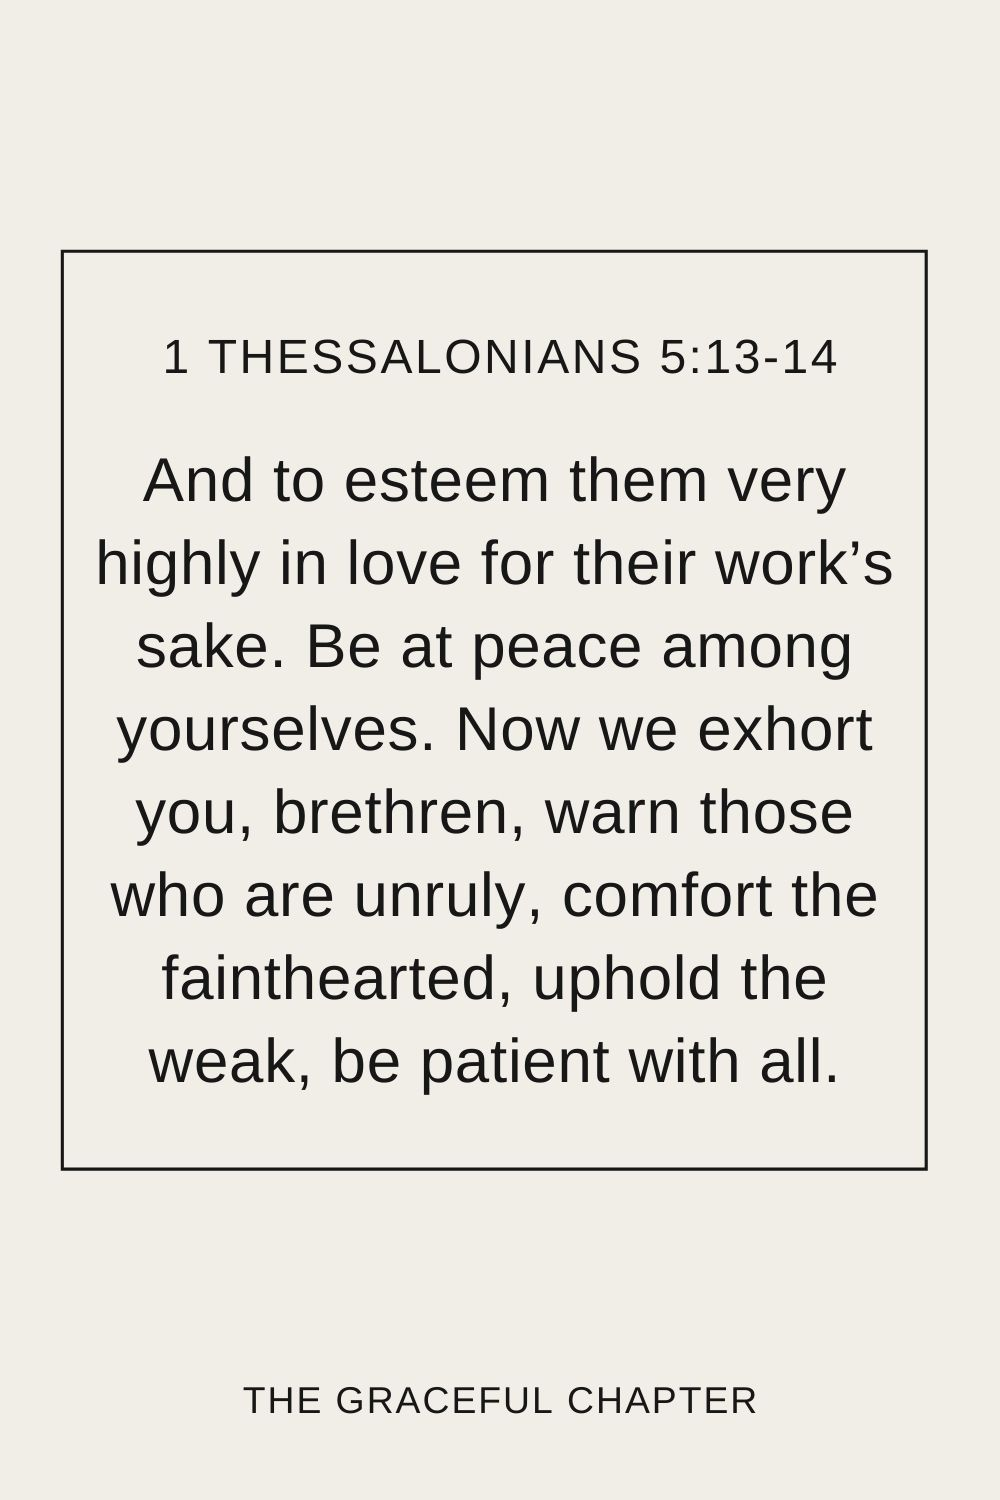 And to esteem them very highly in love for their work's sake. Be at peace among yourselves. Now we exhort you, brethren, warn those who are unruly, comfort the fainthearted, uphold the weak, be patient with all. 1 Thessalonians 5:13-14